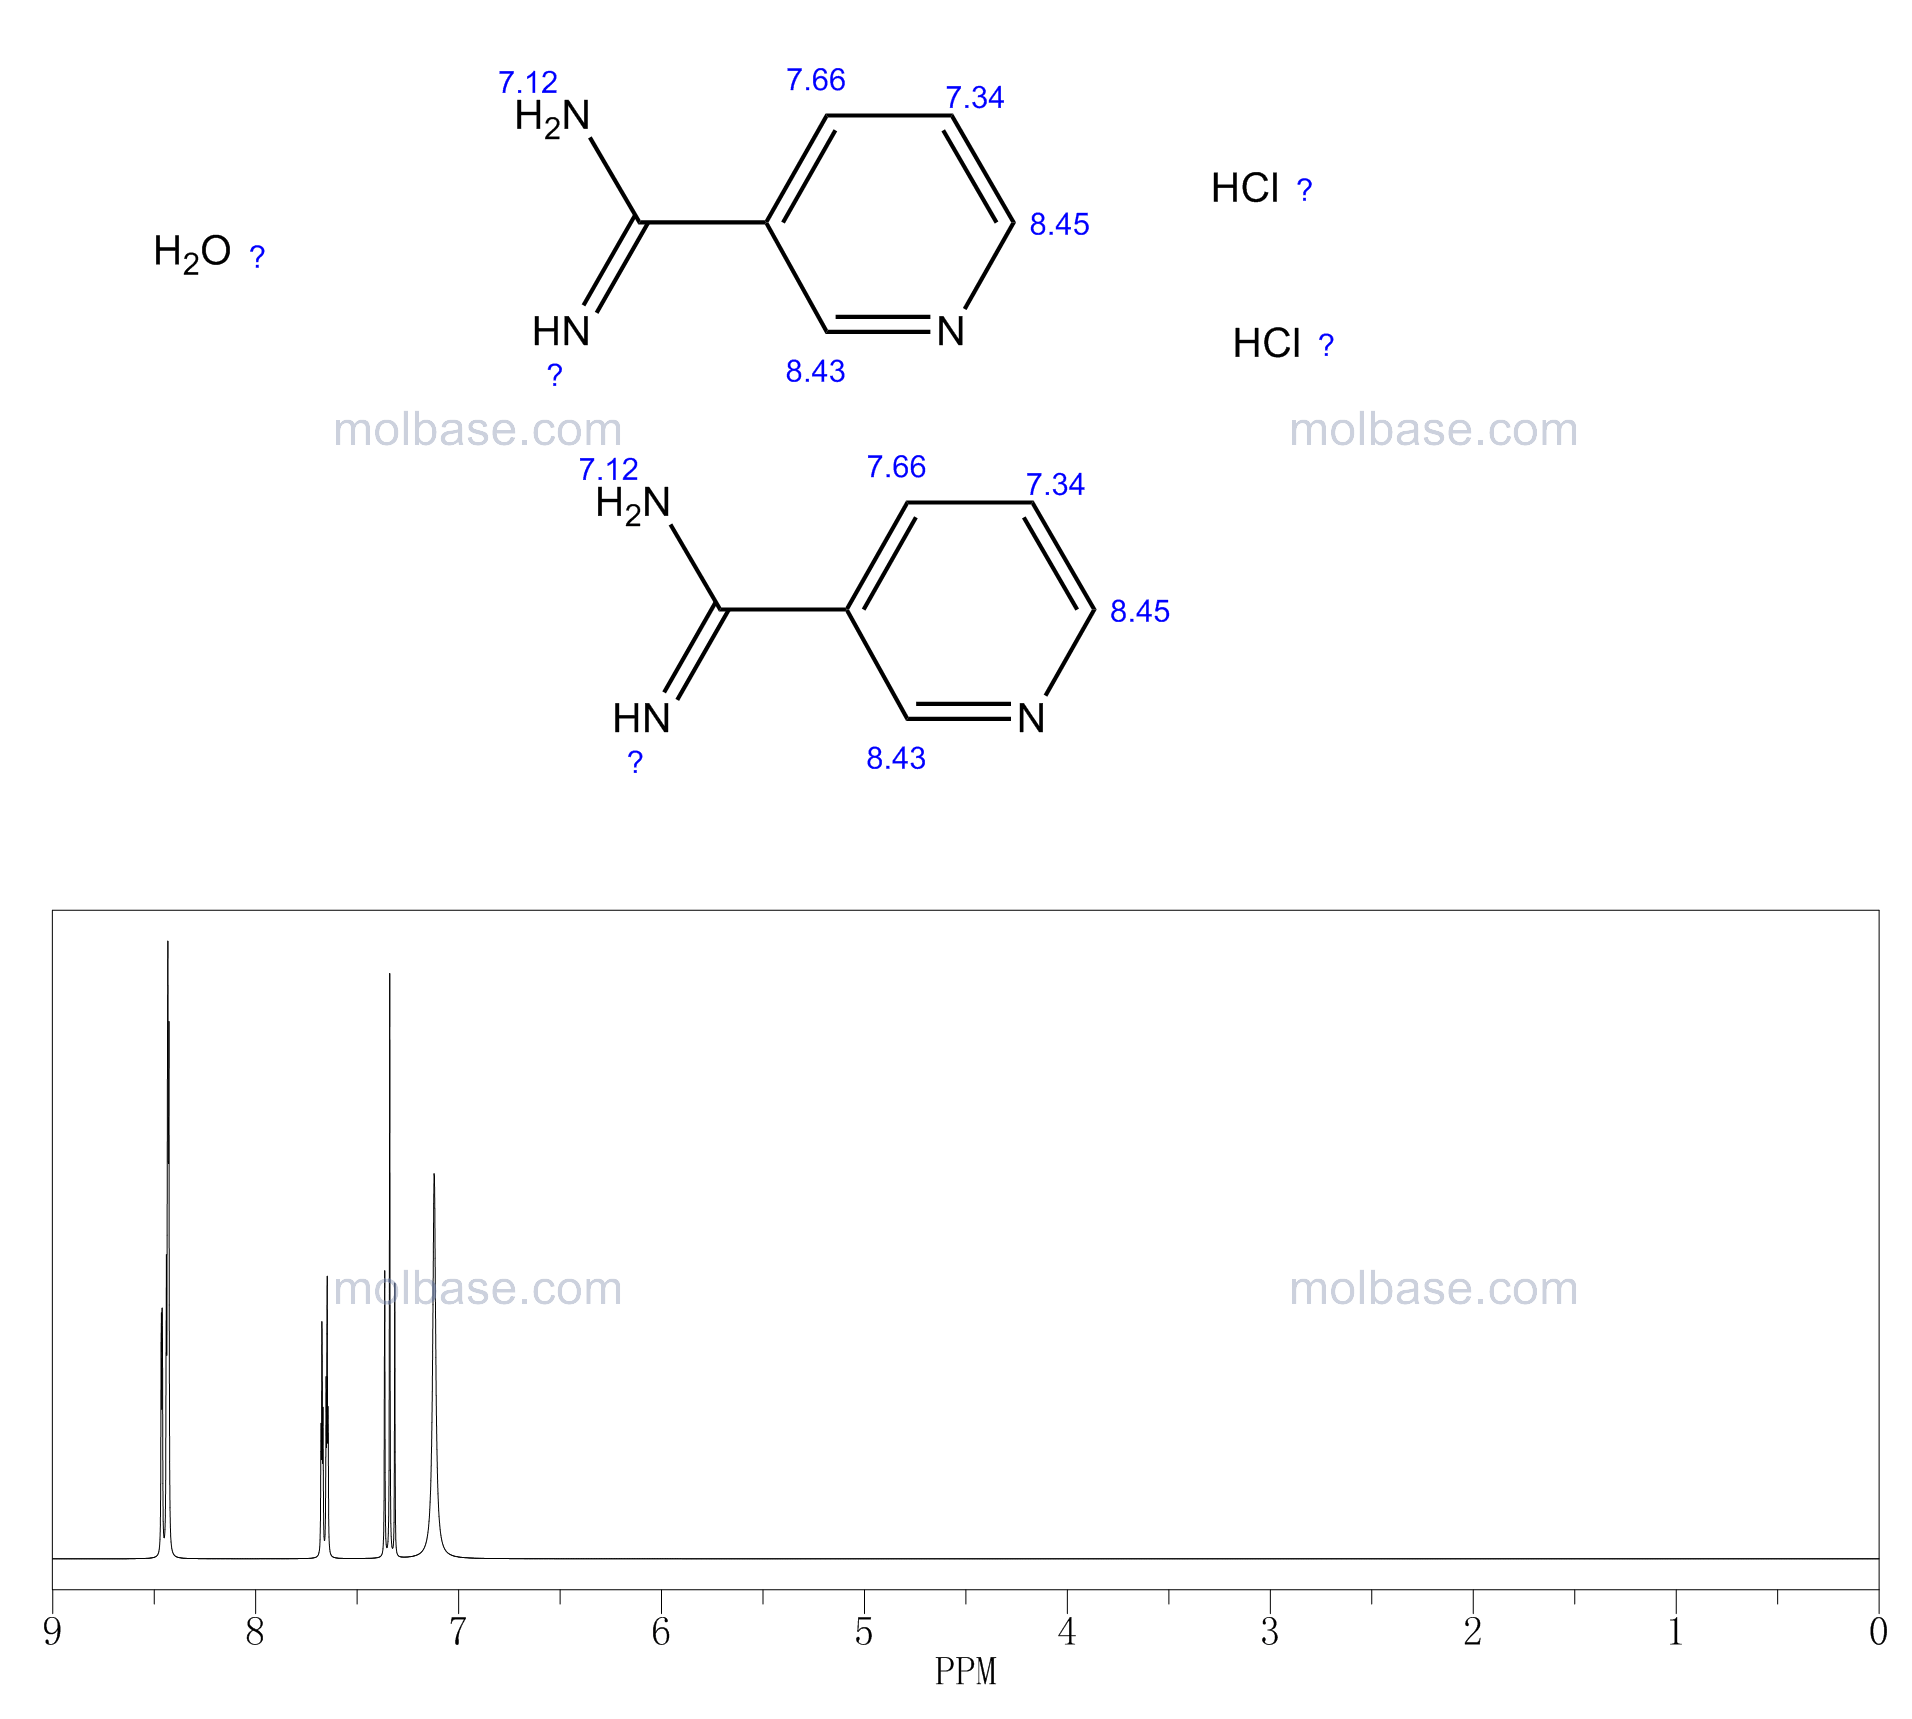 PYRIDINE-3-CARBOXIMIDAMIDE HEMIHYDRATE HYDROCHLORIDE NMR spectra analysis, Chemical CAS NO. 871825-82-0 NMR spectral analysis, PYRIDINE-3-CARBOXIMIDAMIDE HEMIHYDRATE HYDROCHLORIDE C-NMR spectrum